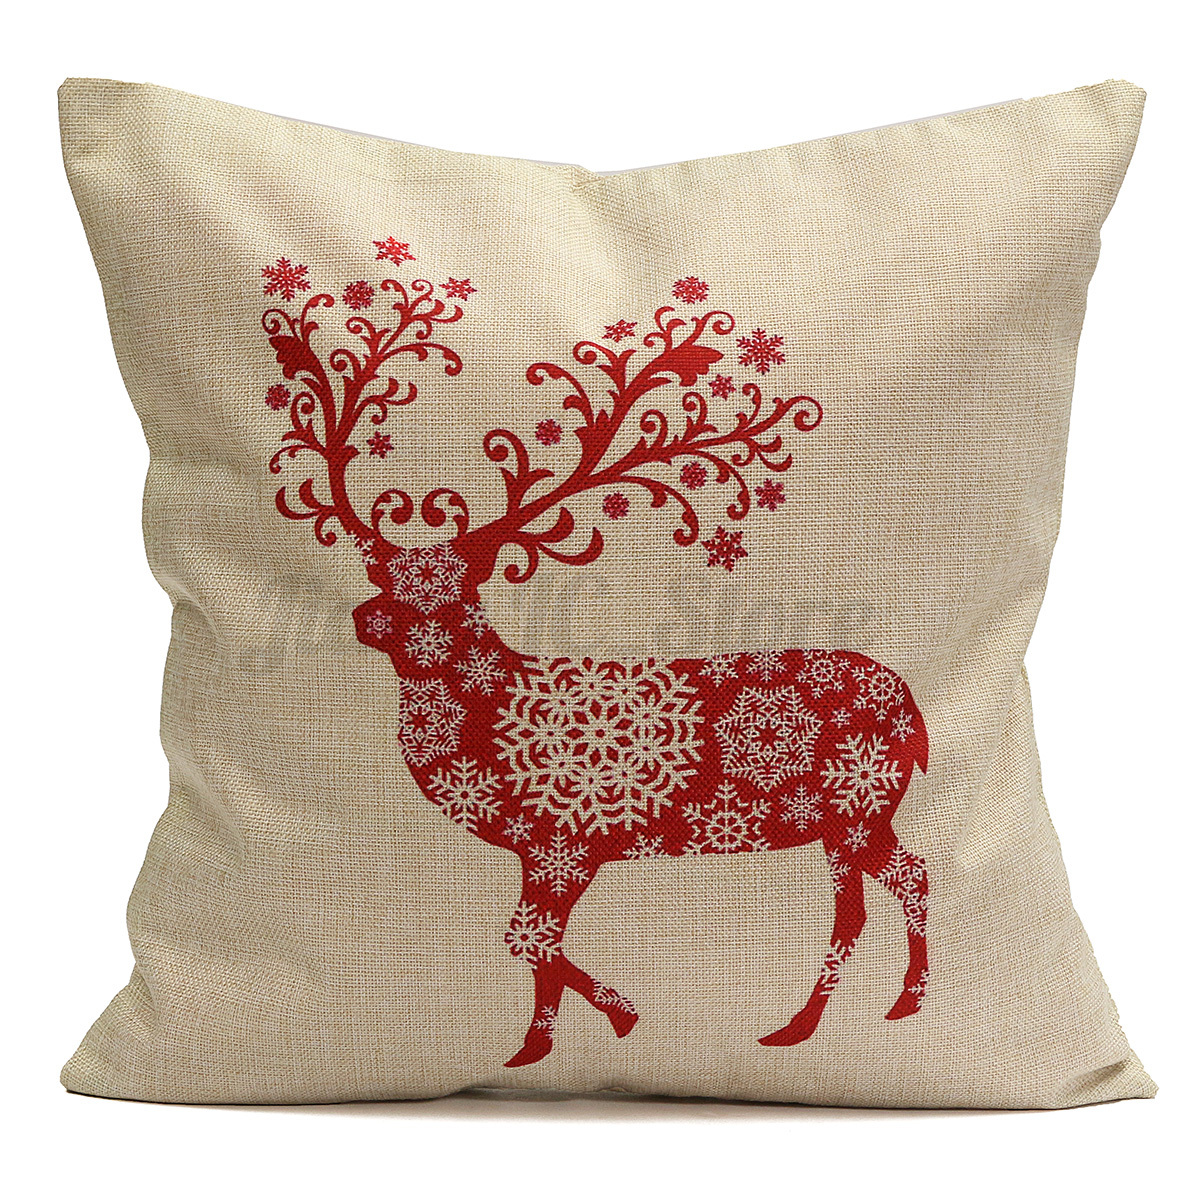 Decorative Pillows Deer : Christmas Elk Deer Throw Pillow Case Cushion Cover Xmas Home Sofa Bedroom Decor eBay